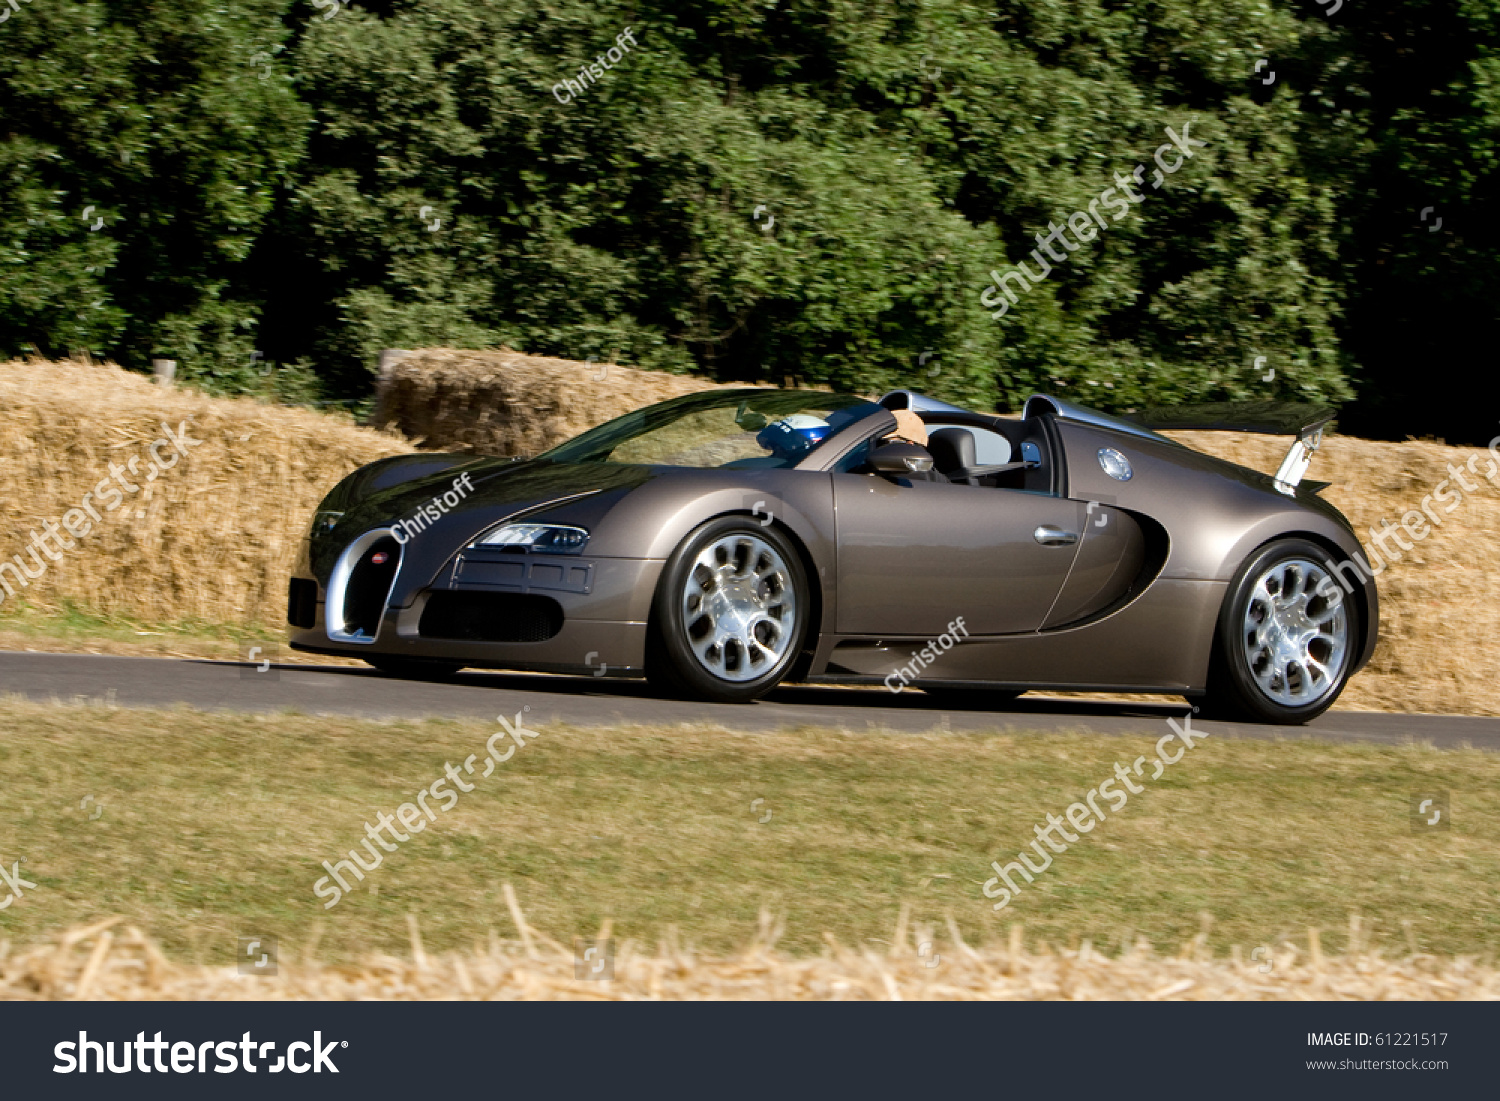 goodwood uk july 1 bugatti veyron on track at goodwood festival of speed. Black Bedroom Furniture Sets. Home Design Ideas